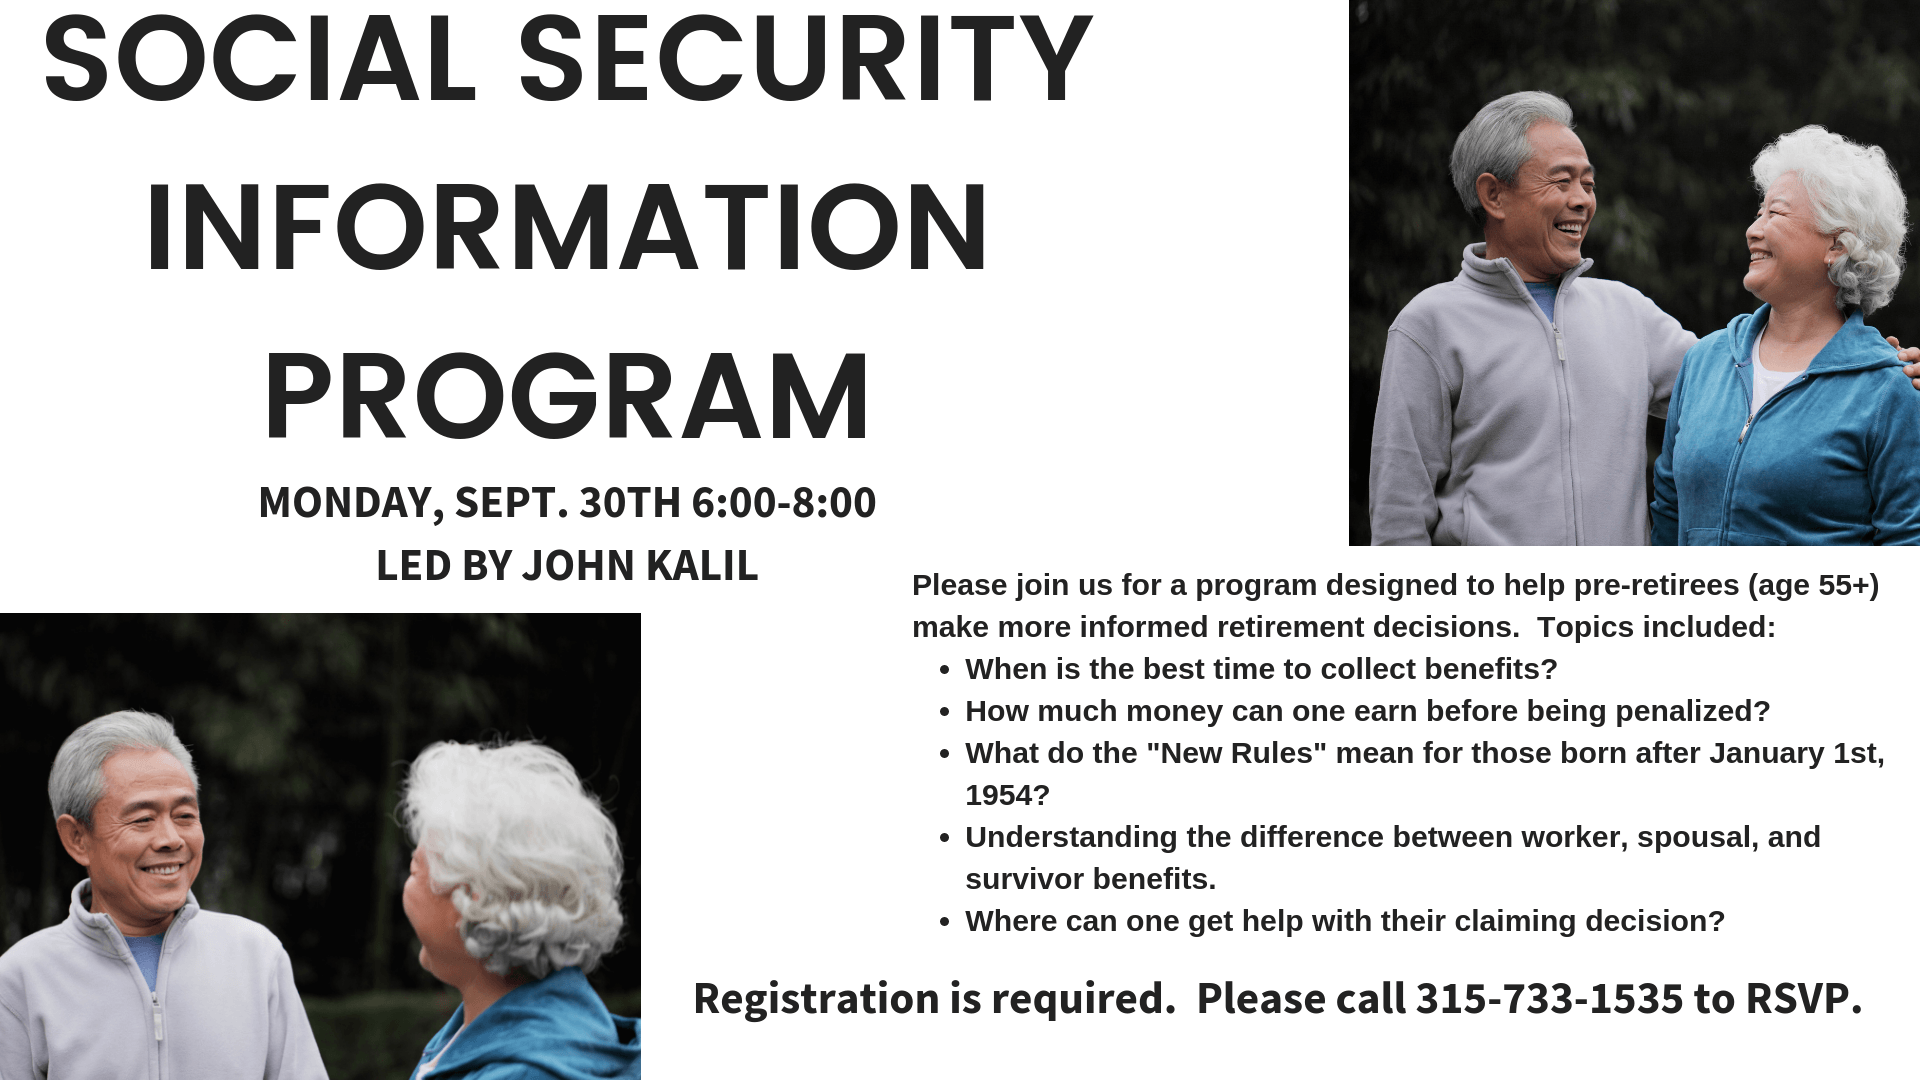 Social Security Information Program 6 00 7 30 New Hartford Public Library